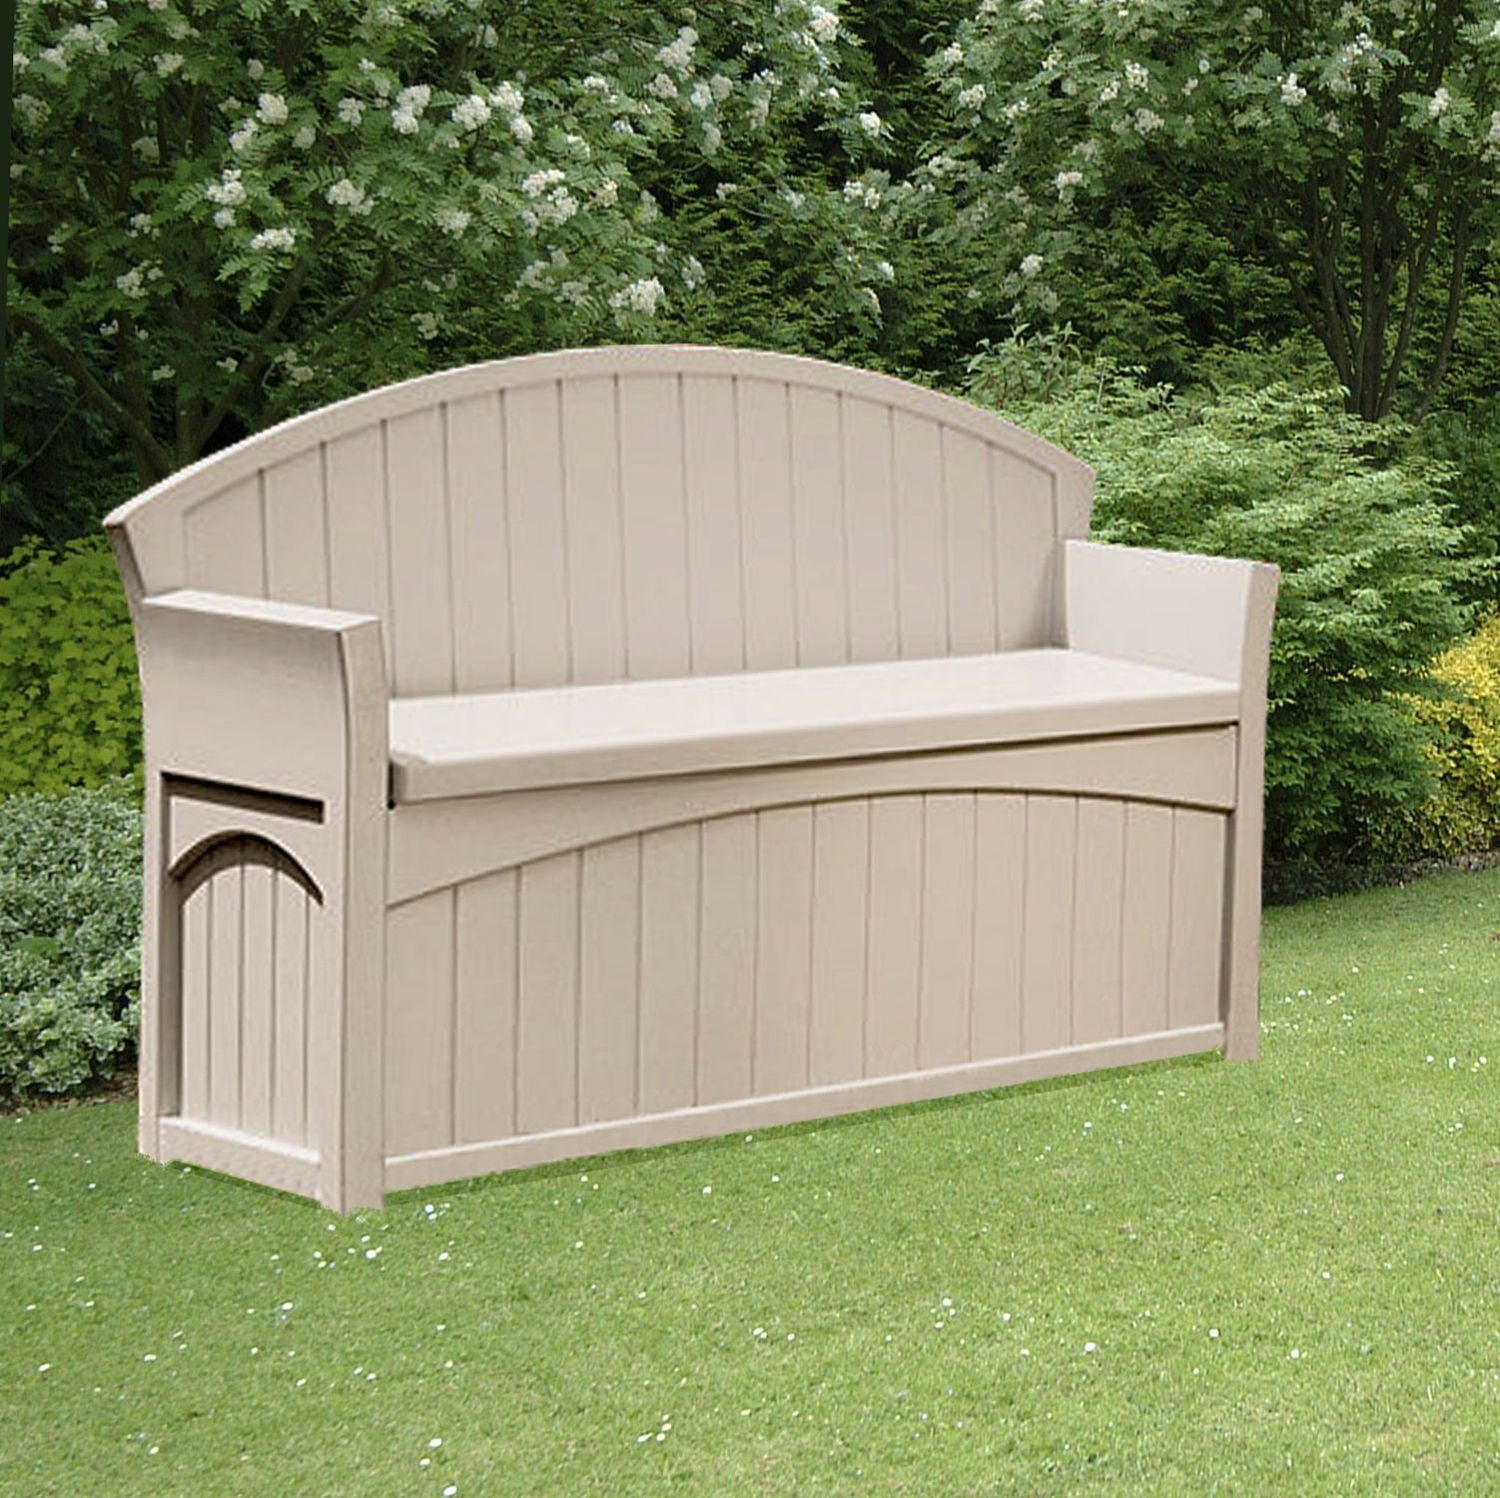 Outdoor Patio Furniture Storage: Suncast 189 Litre Plastic Storage Bench